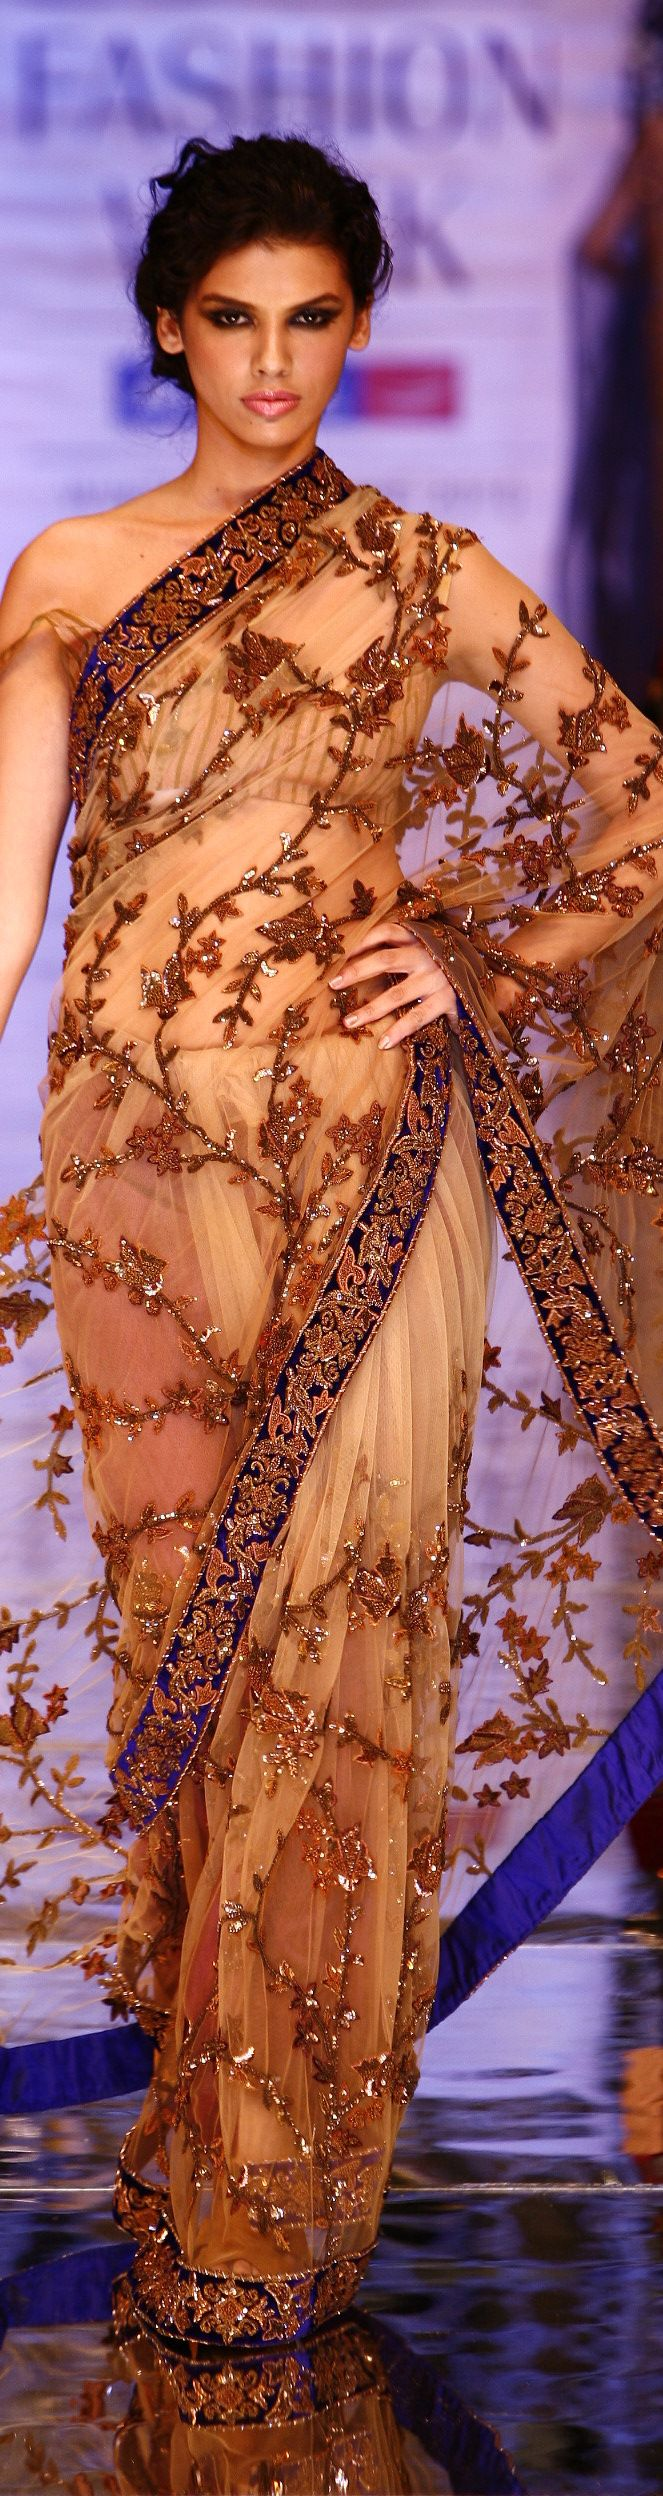 Manish Malhotra Collection at Lakme Fashion Week 2010